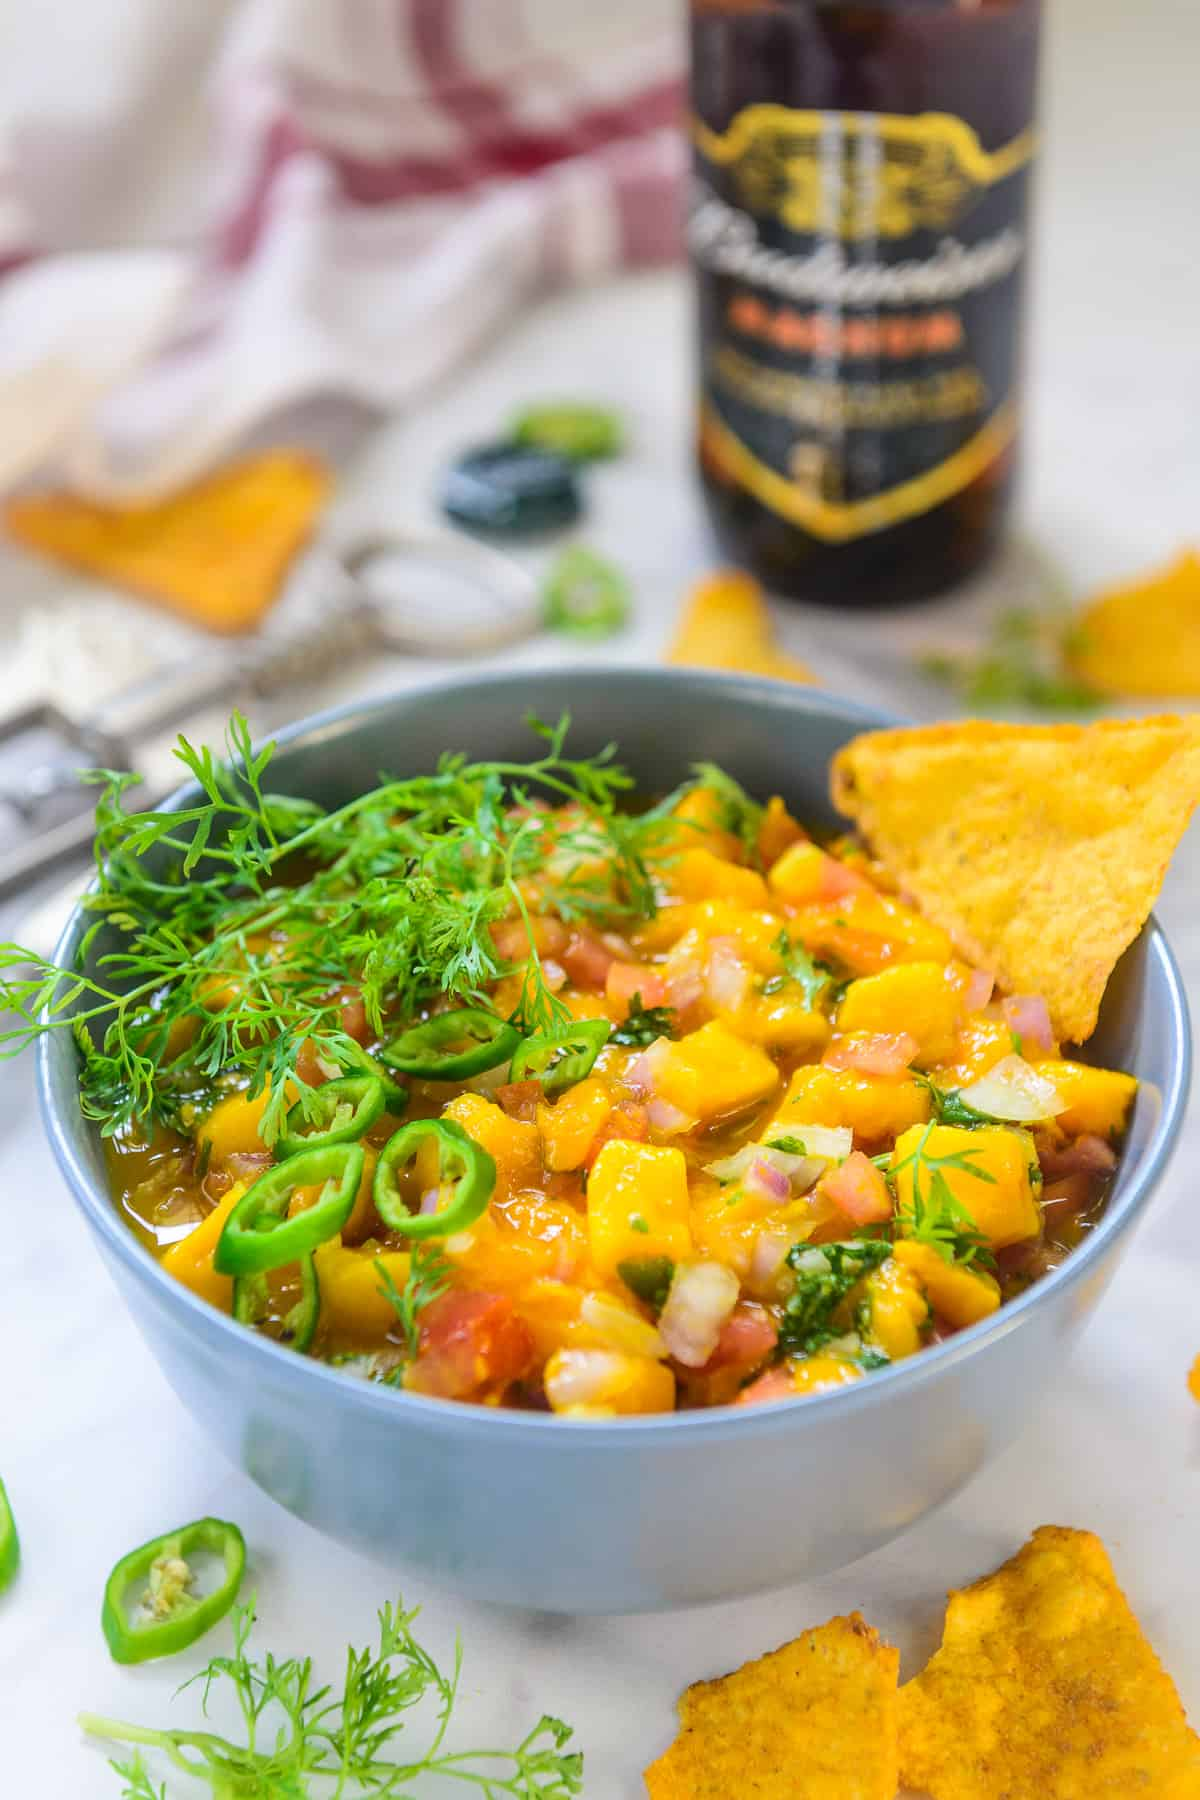 Mango Salsa served in a bowl.